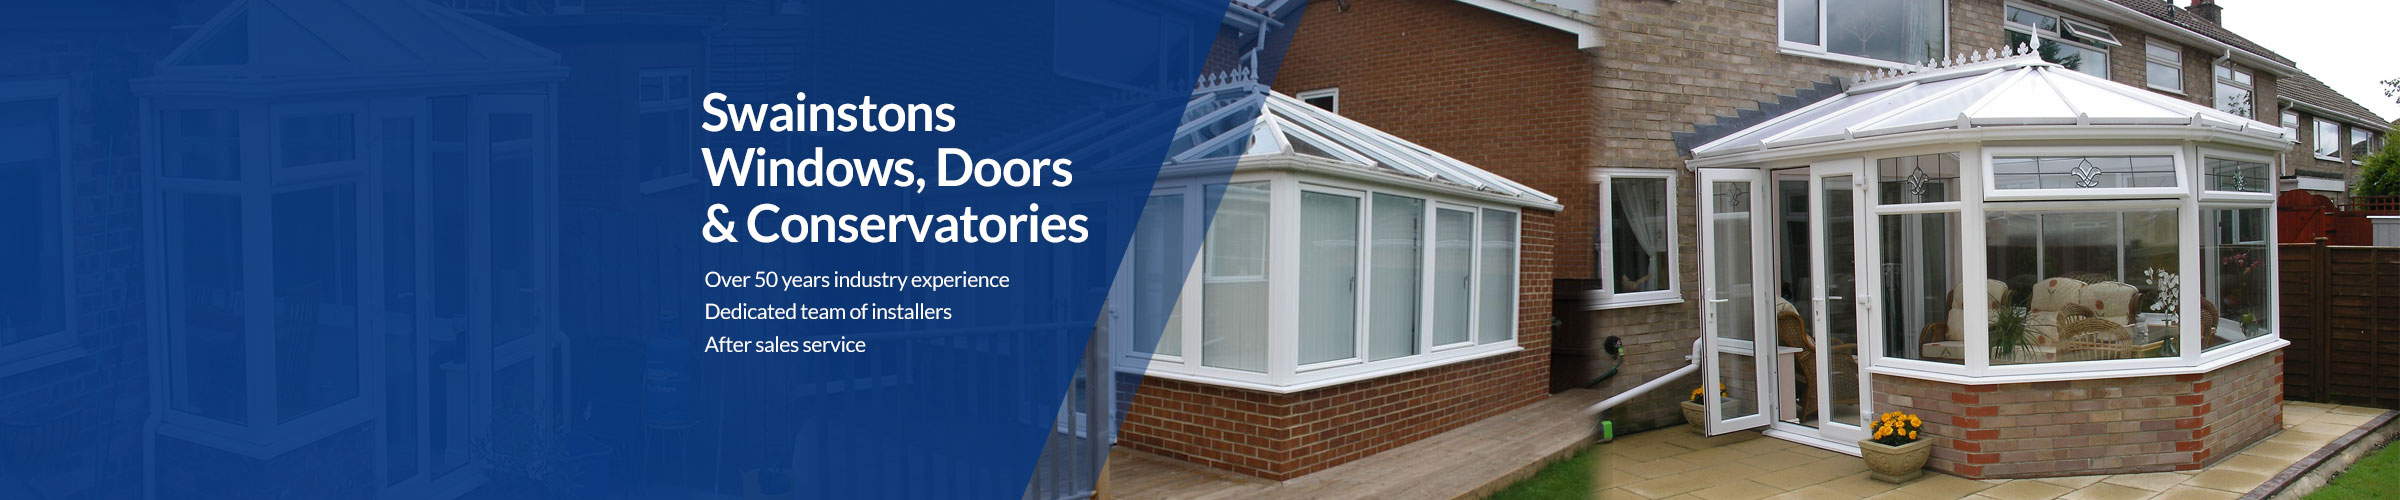 conservatories-banner1